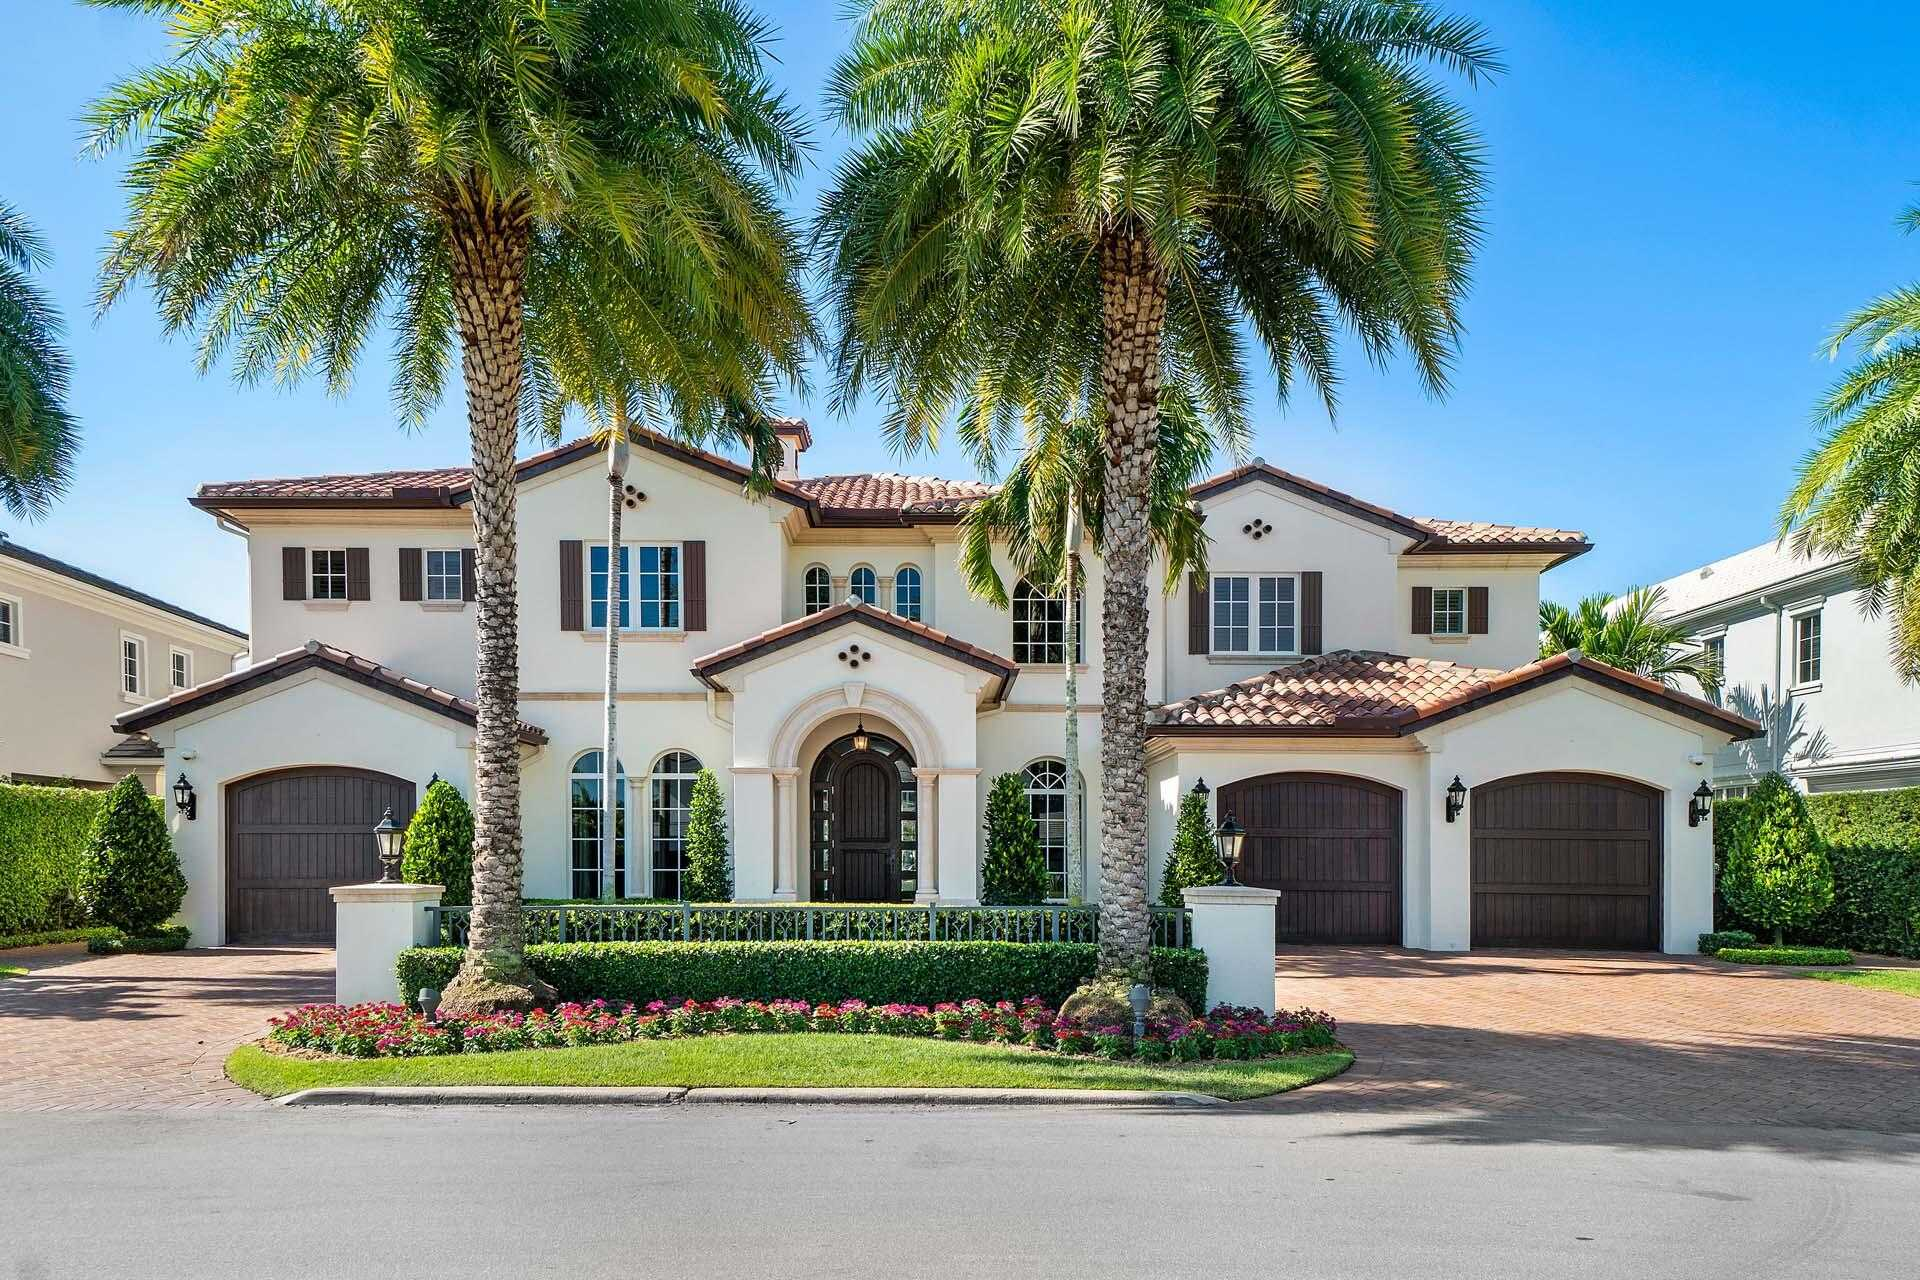 $11,500,000 - 5Br/8Ba -  for Sale in Royal Palm Yacht & Country Club, Boca Raton